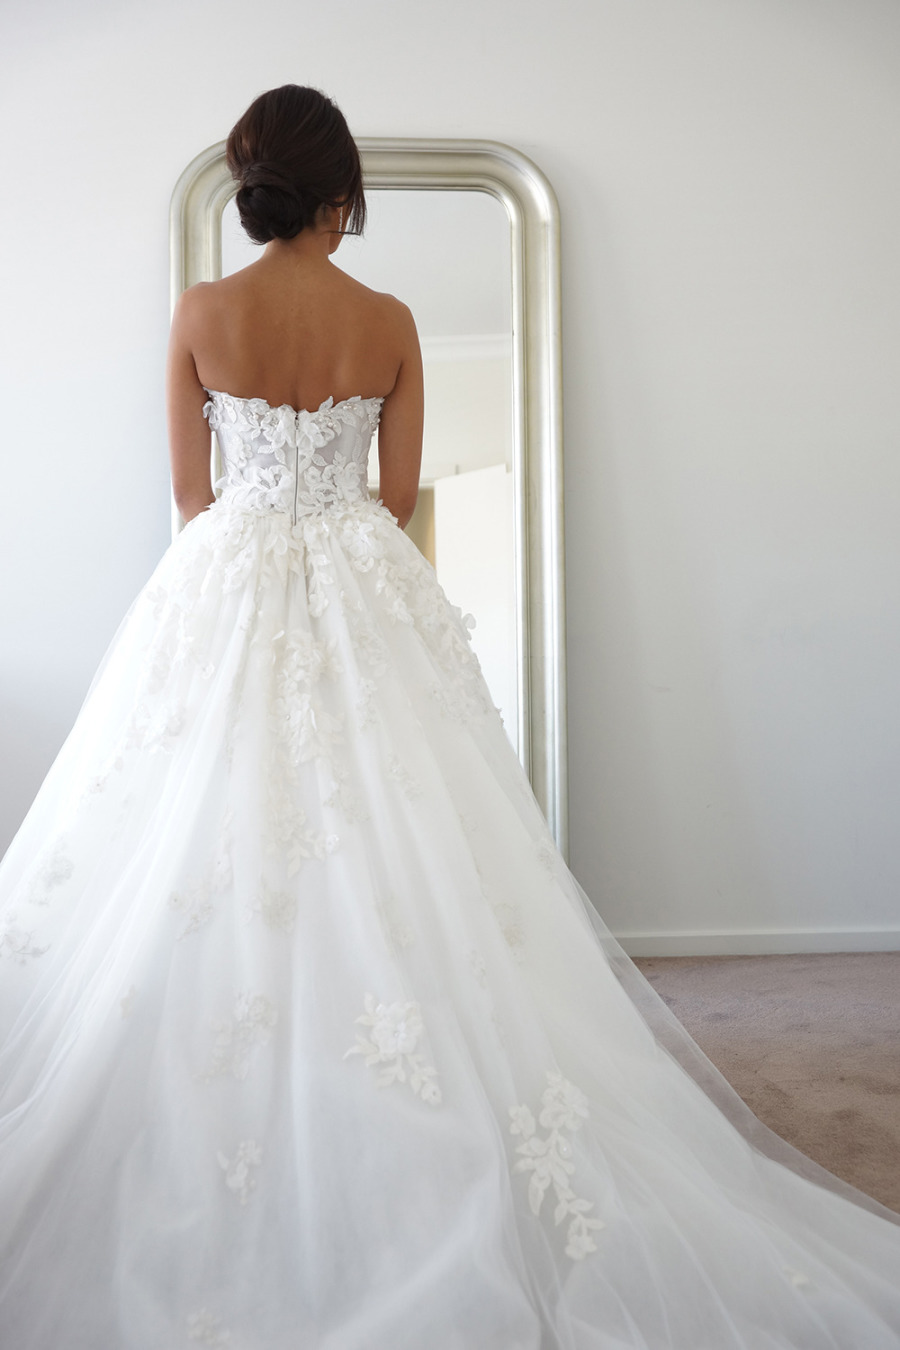 wedding-dress-ideas-2-01022014